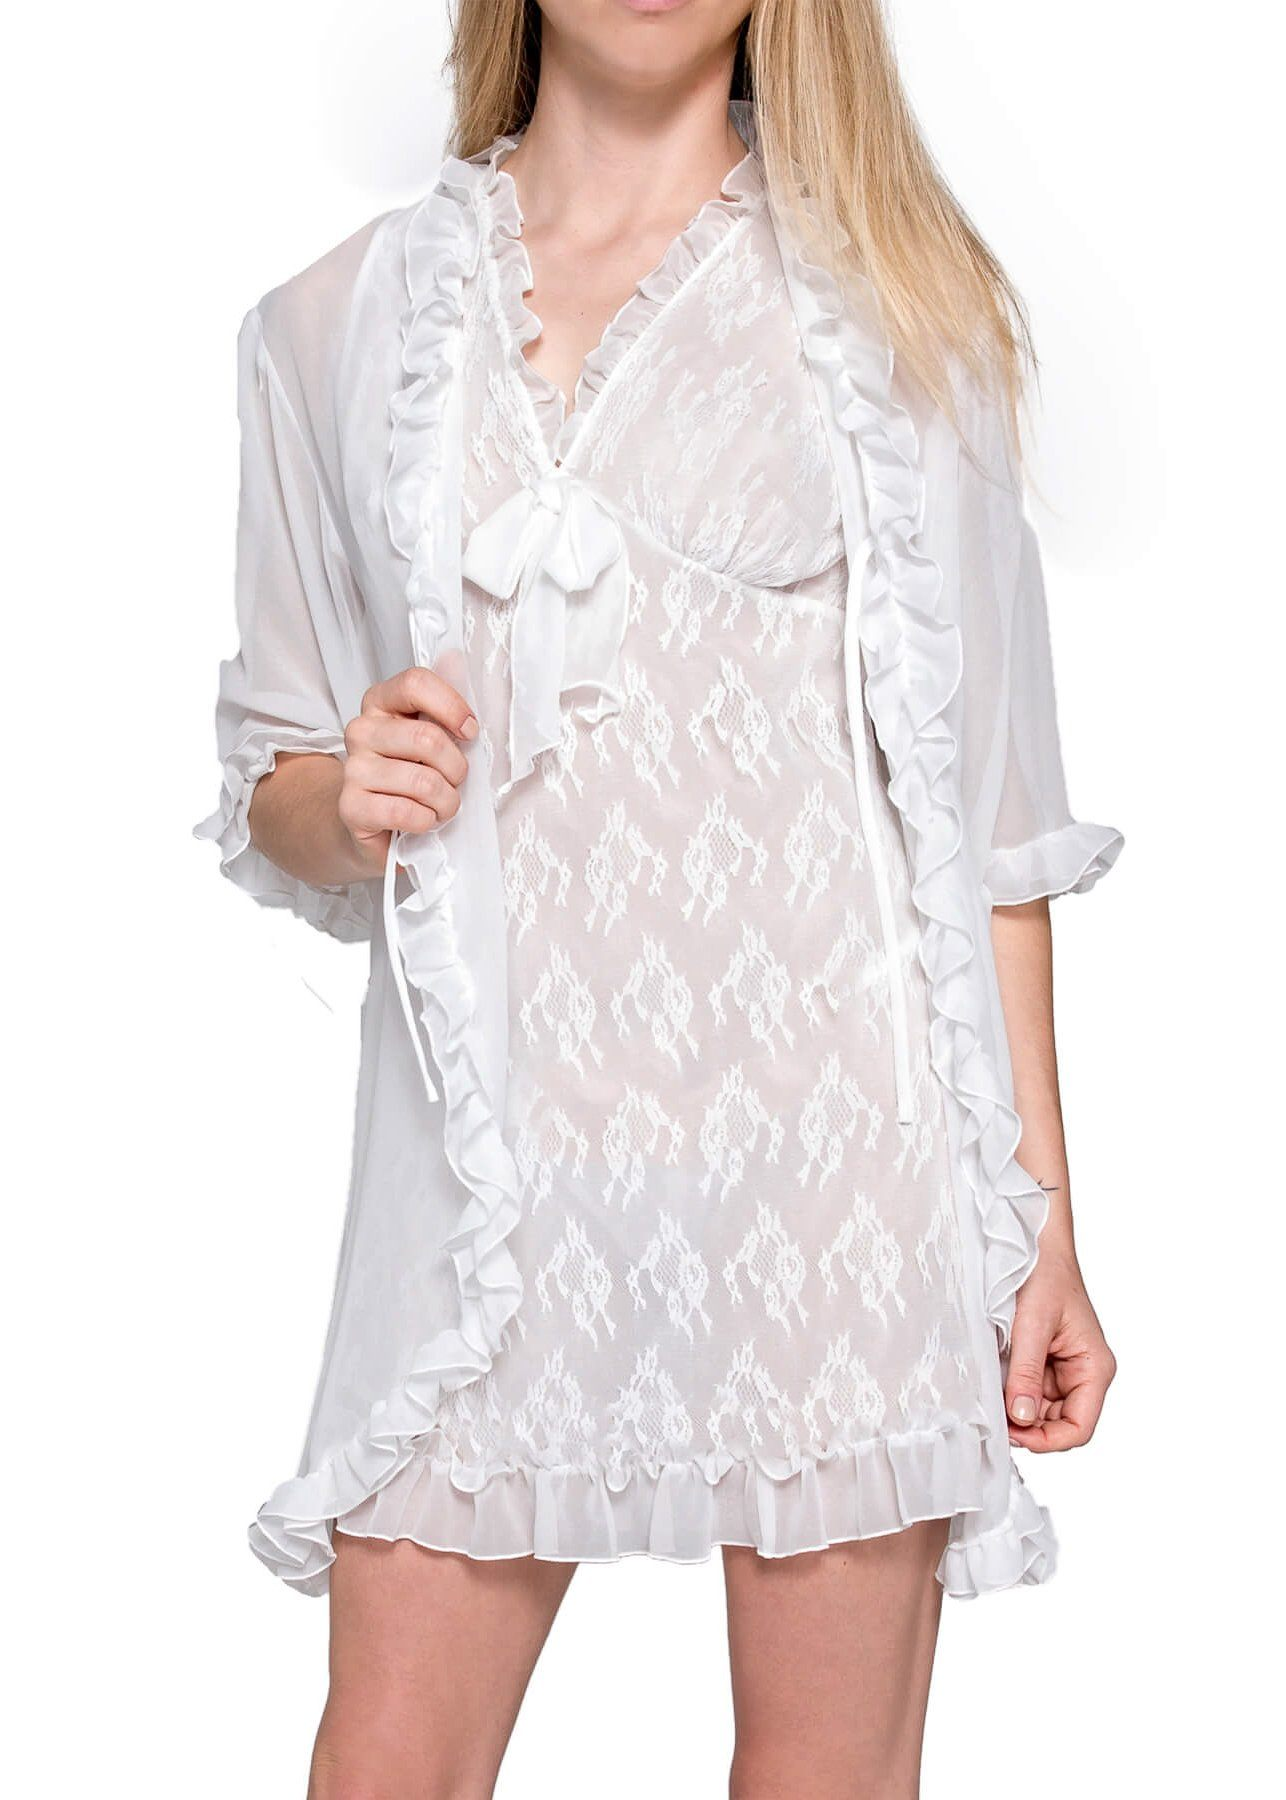 Chantilly Short Nightgown and Cover Up - White Mystique Intimates